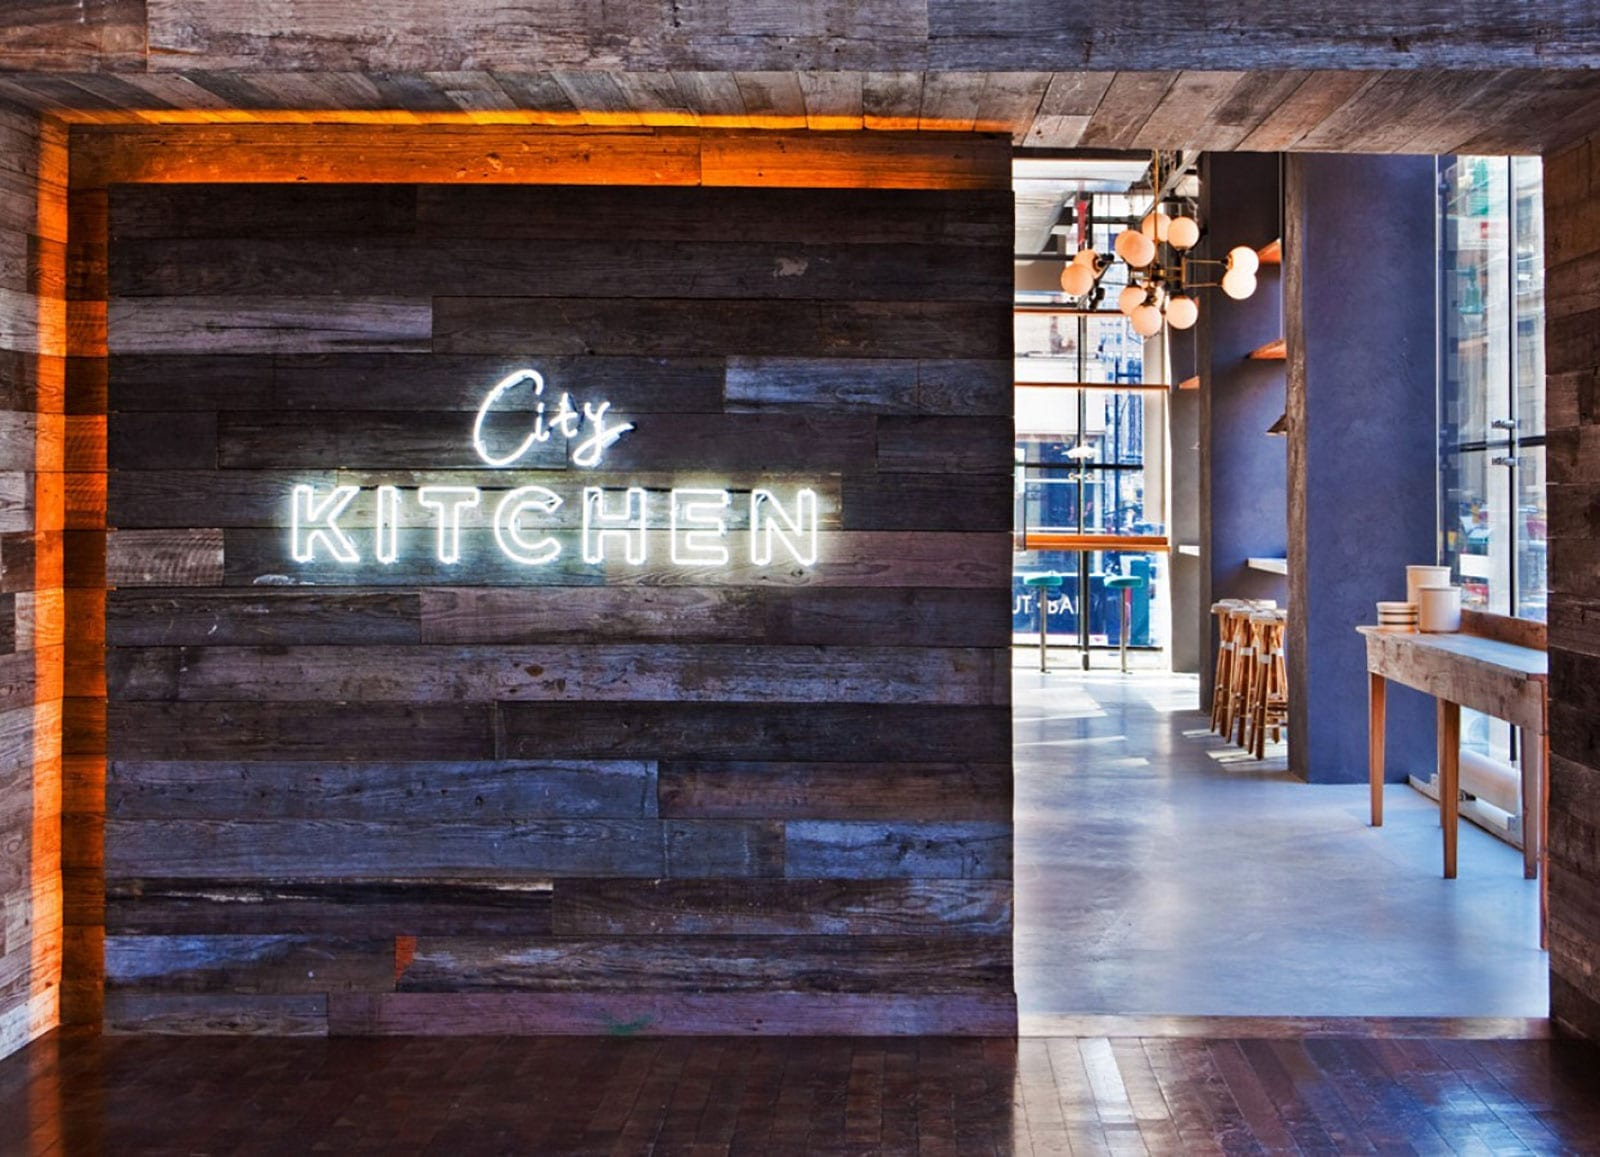 City Kitchen Foodmarket | Loving New York